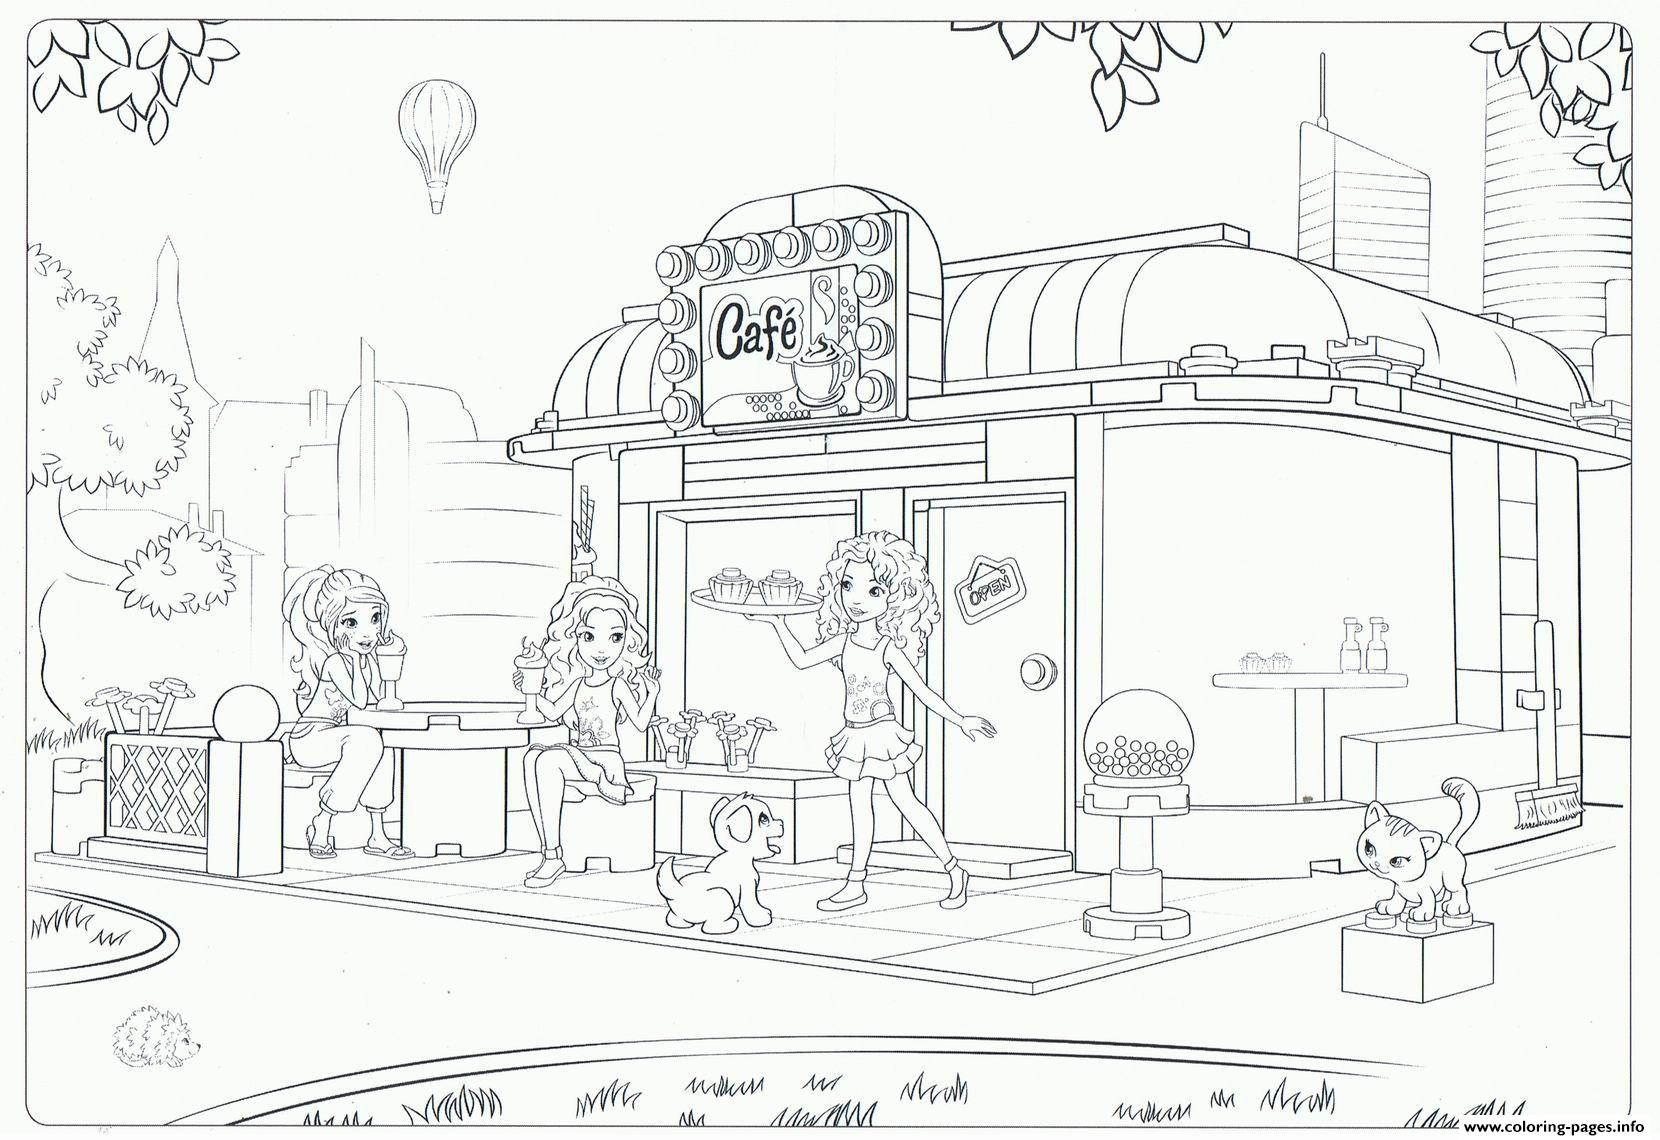 lego friends cafe Coloring pages Printable